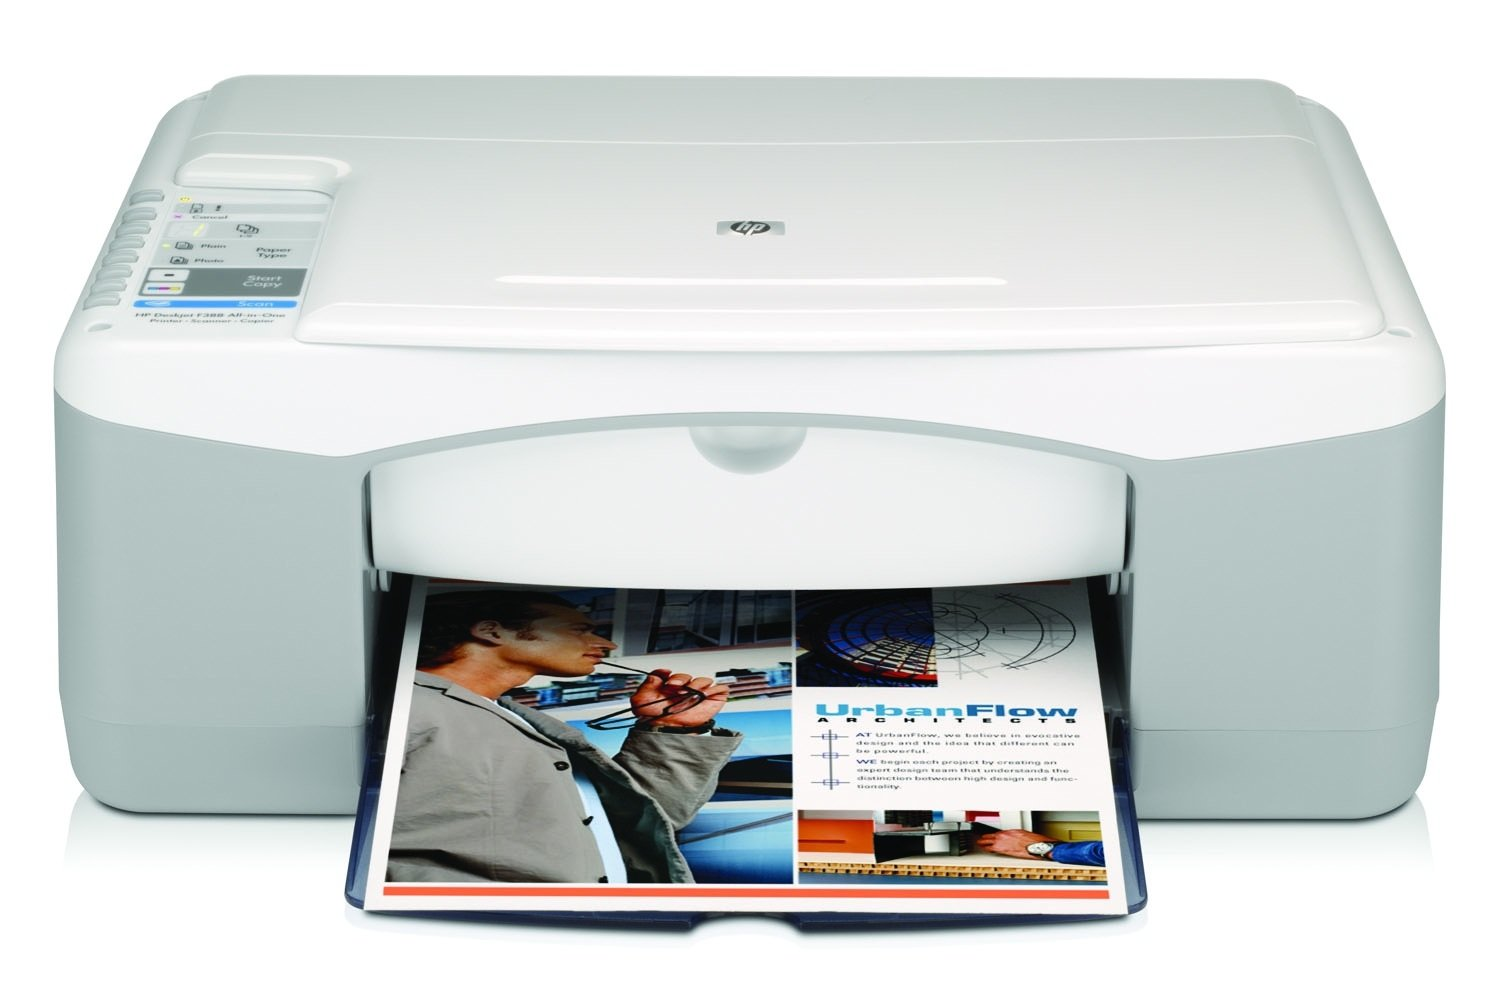 hp deskjet f388 all-in-one